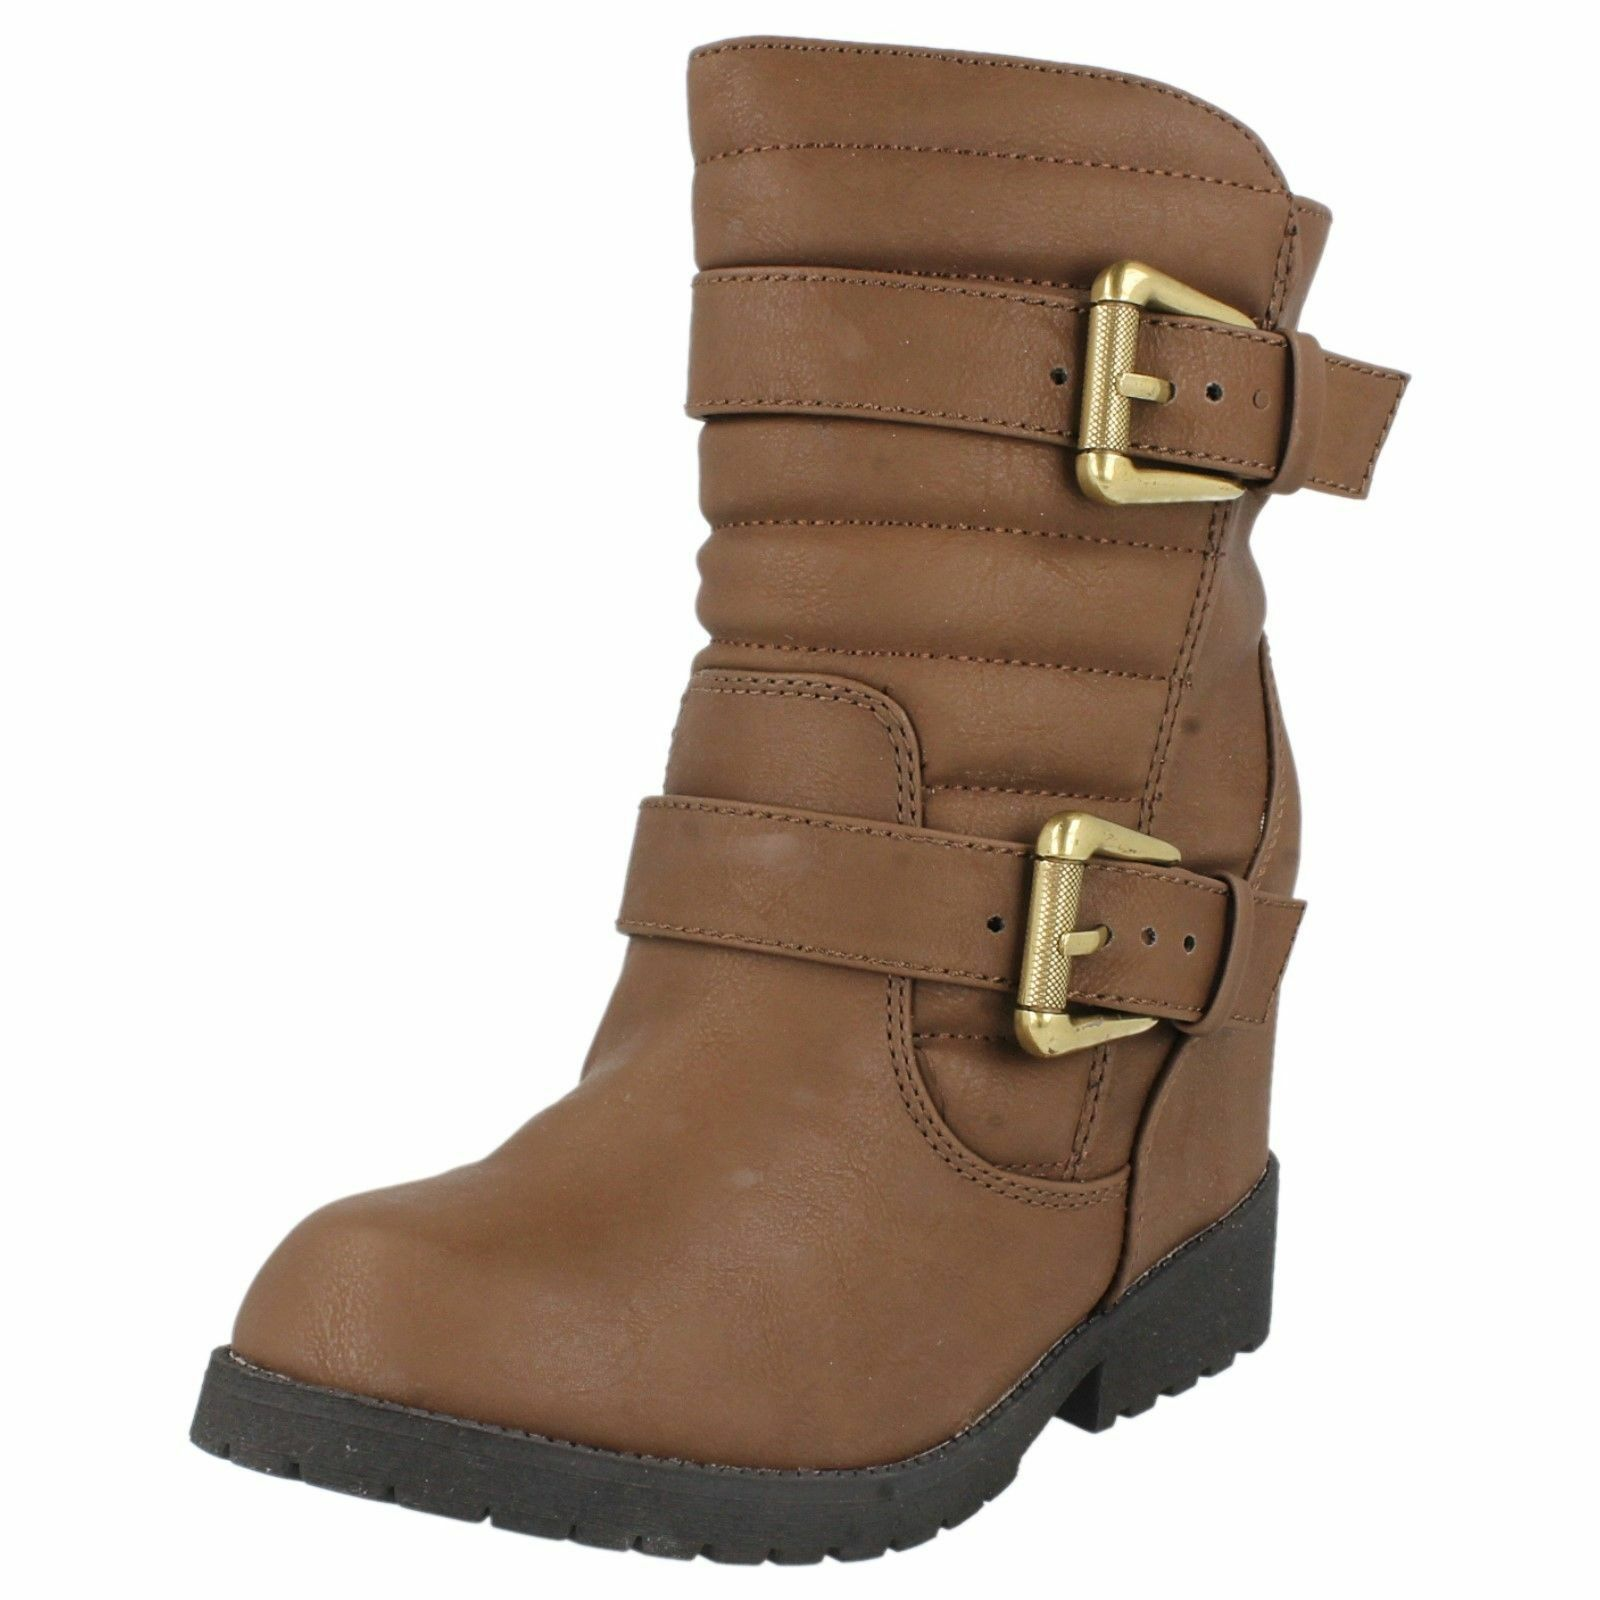 "LADIES SPOT ON BROWN BOOTS WITH CONCEALED WEDGE ""F50333"""